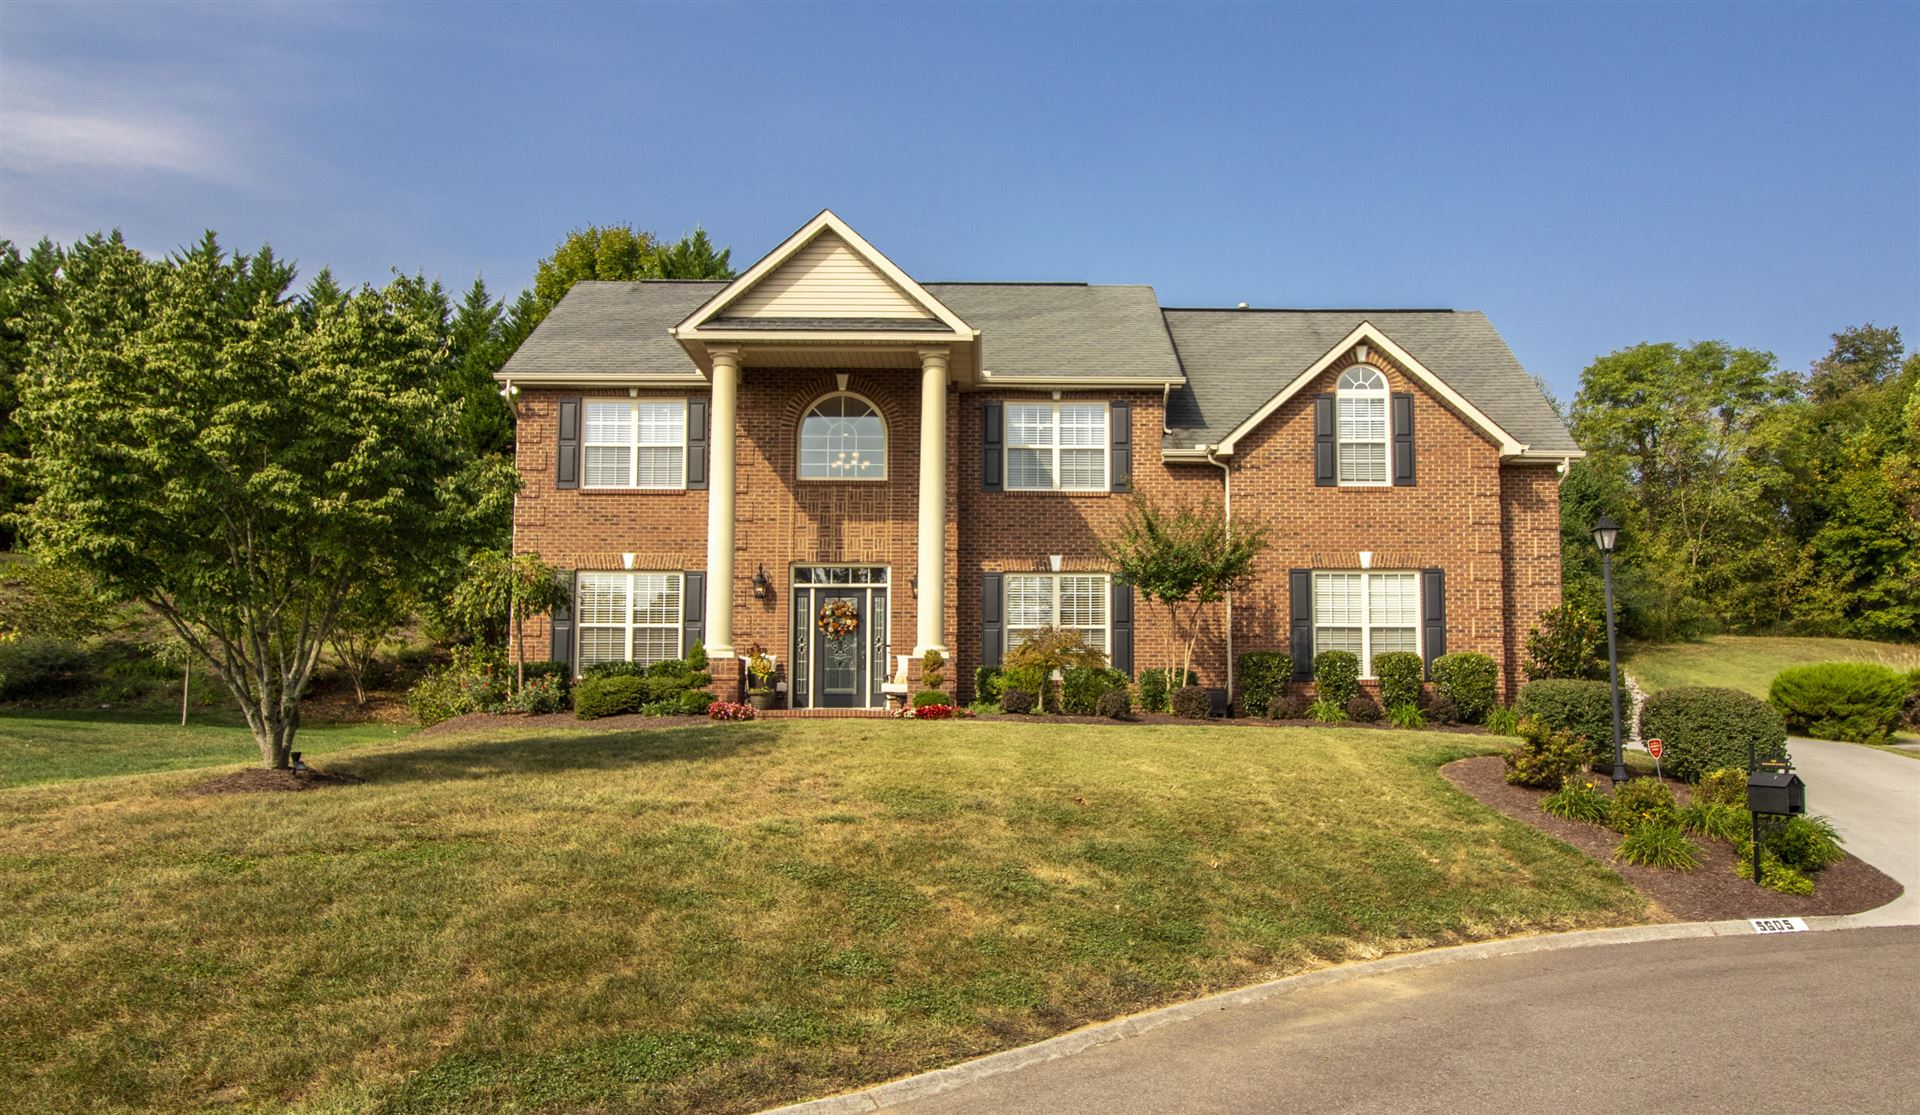 Photo of 5605 Bridgehampton Drive, Powell, TN 37849 (MLS # 1107661)